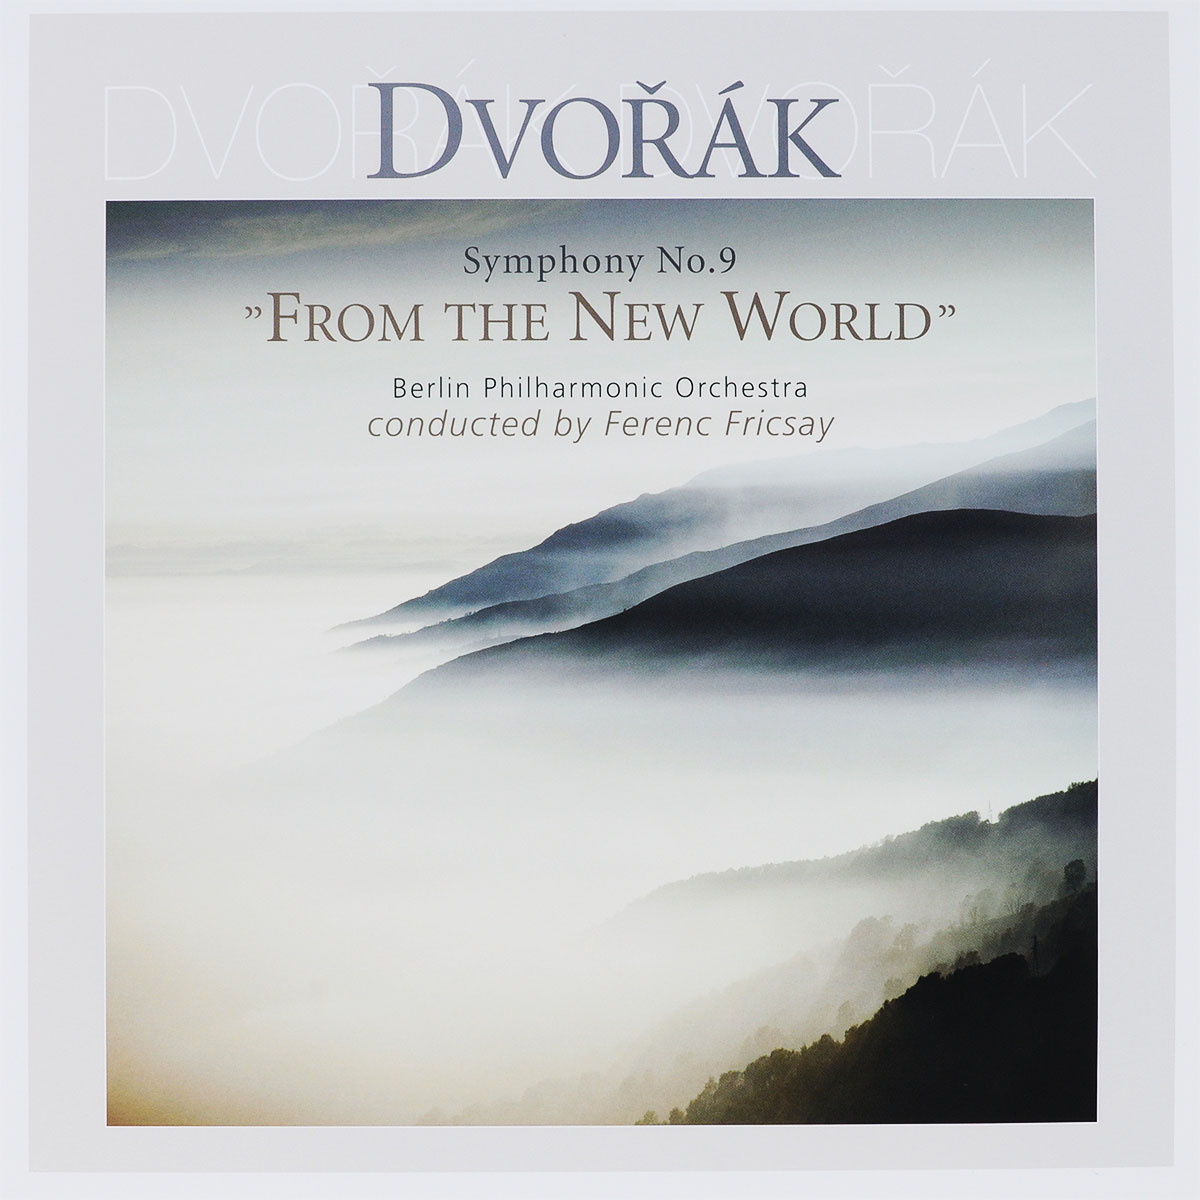 Ференц Фриксэй,Berliner Philharmoniker Ferenc Fricsay. Antonon Dvorak. Symphony № 9 From The New World (LP) бхагаван шри раджниш ошо eneseaustuse vägi virgumine teadlikkusesse